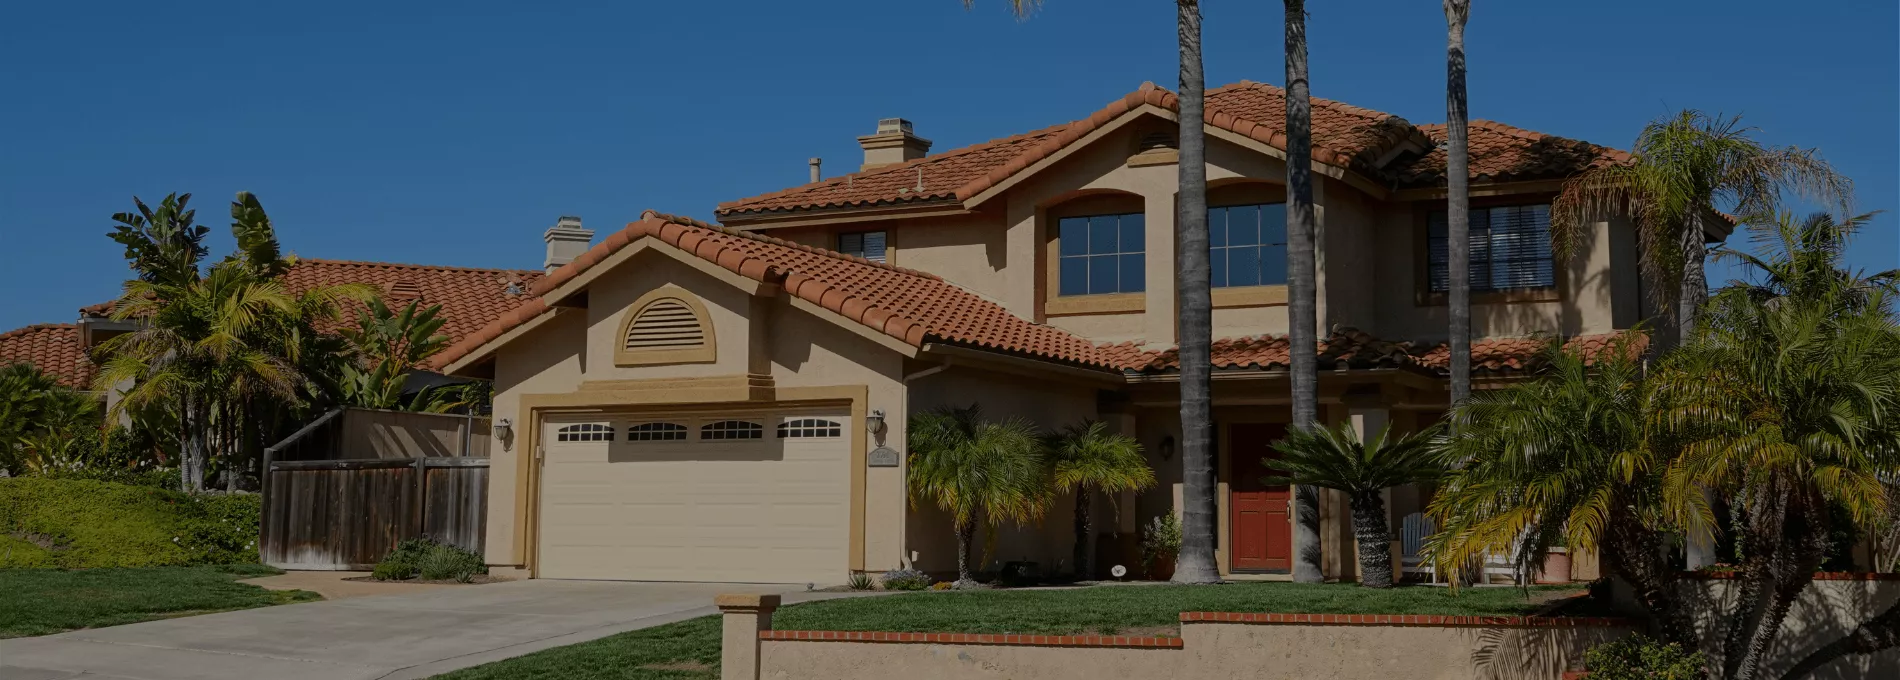 Residential Exterior Painting In San Diego | J Brown Painting